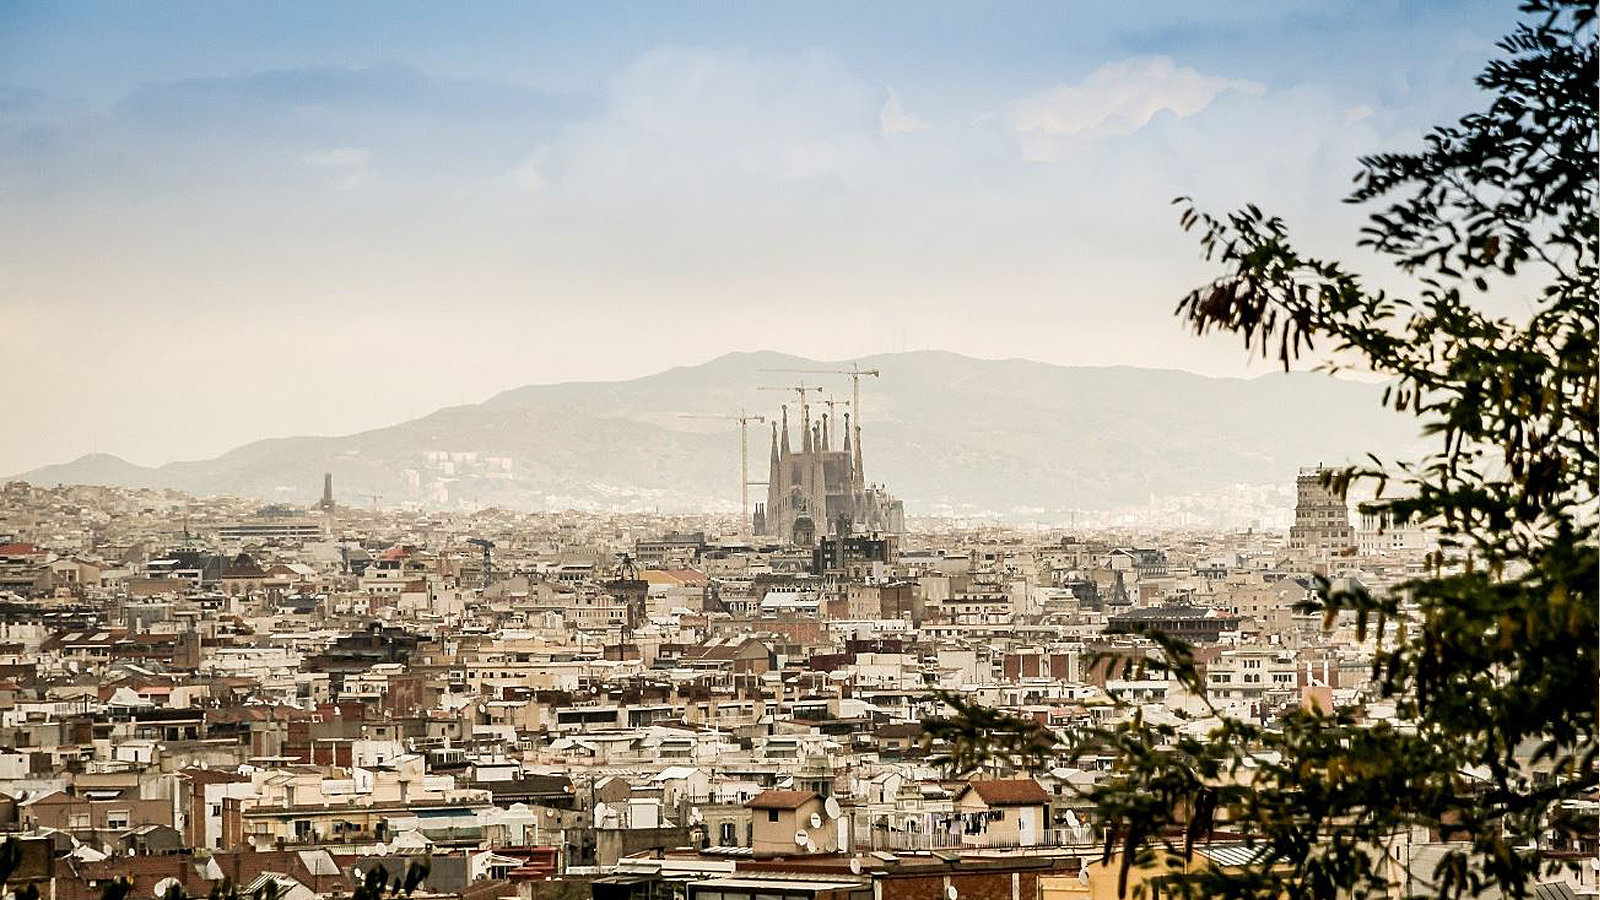 A view over Barcelona with the Sagrada Familia in the center.